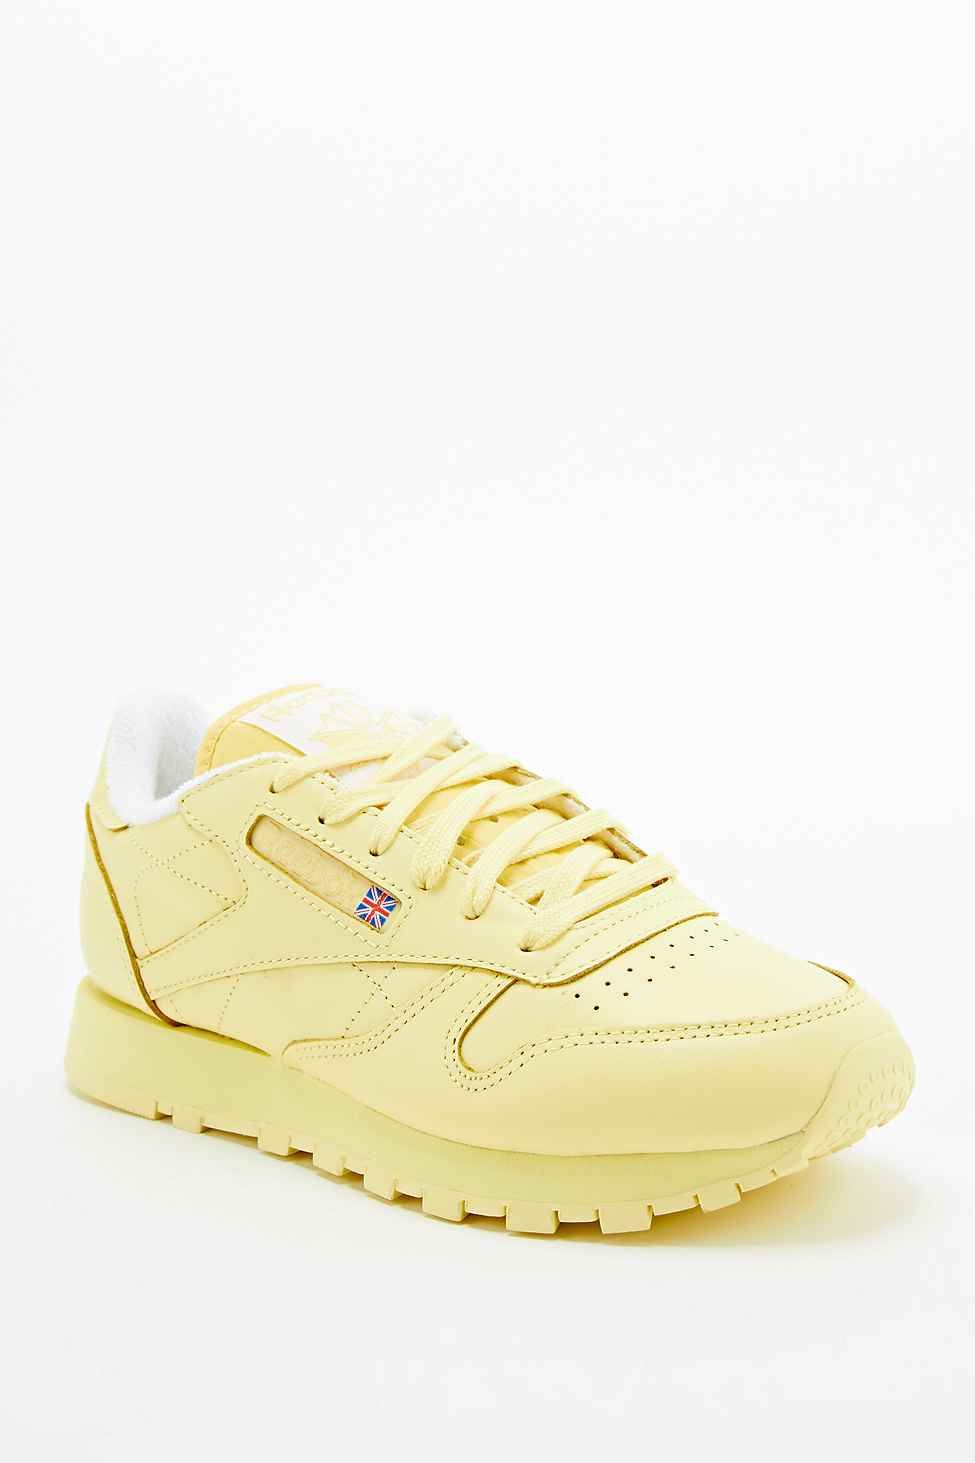 7a81199ce51d Reebok Classic Leather Trainers in Yellow   shoes   Reebok, Leather ...